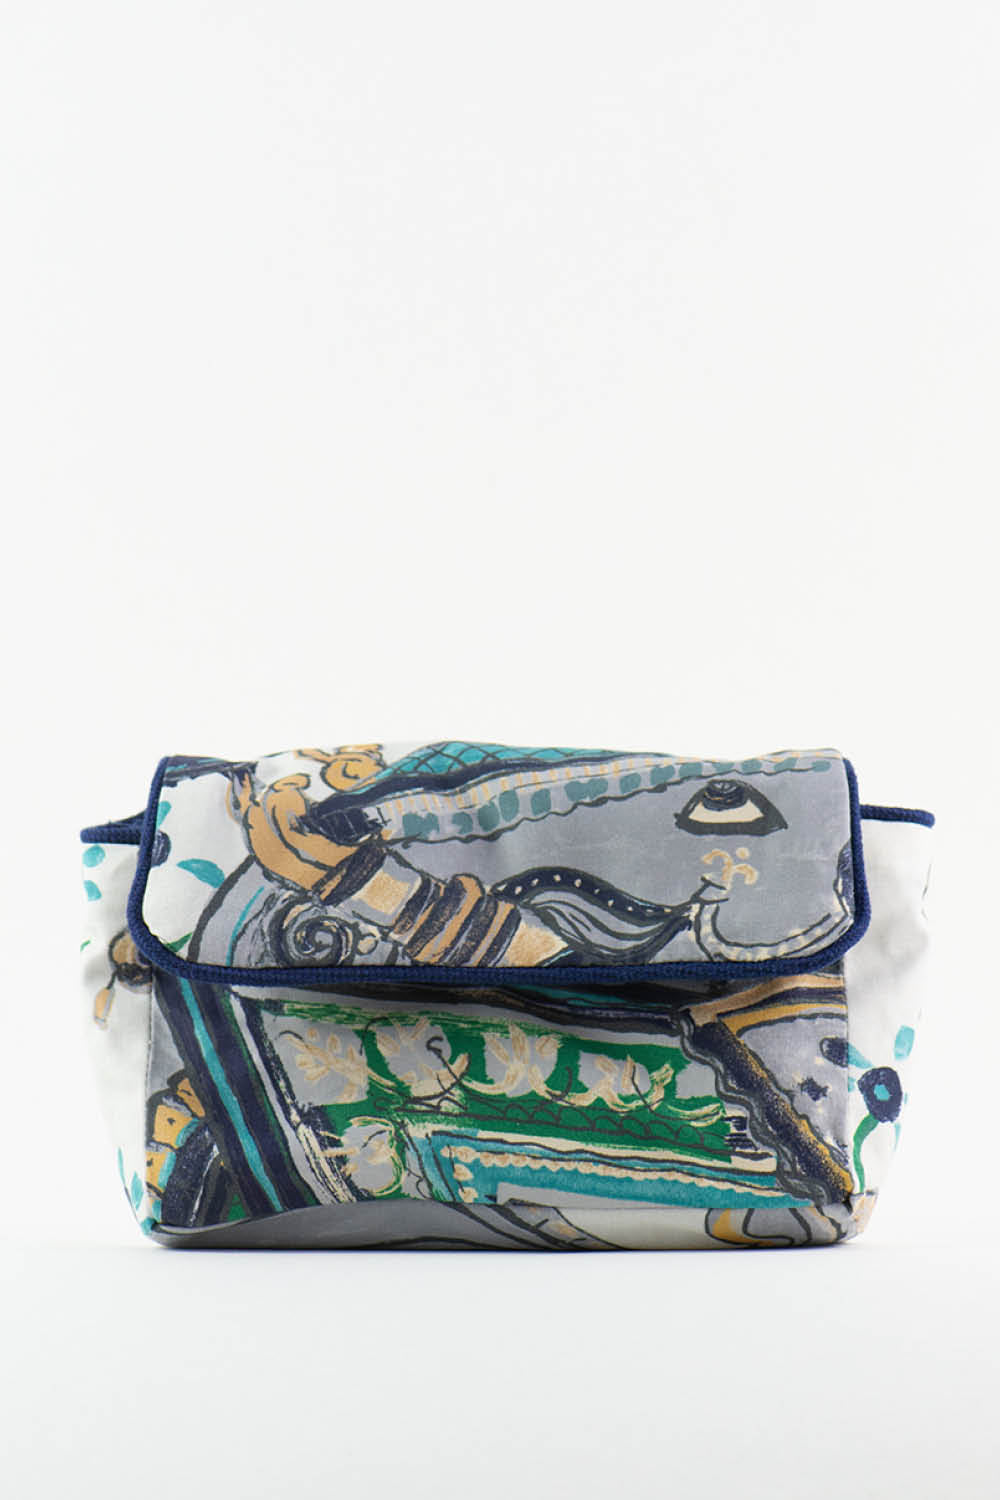 Upcycling Bag No. 4 in Blue Elephant